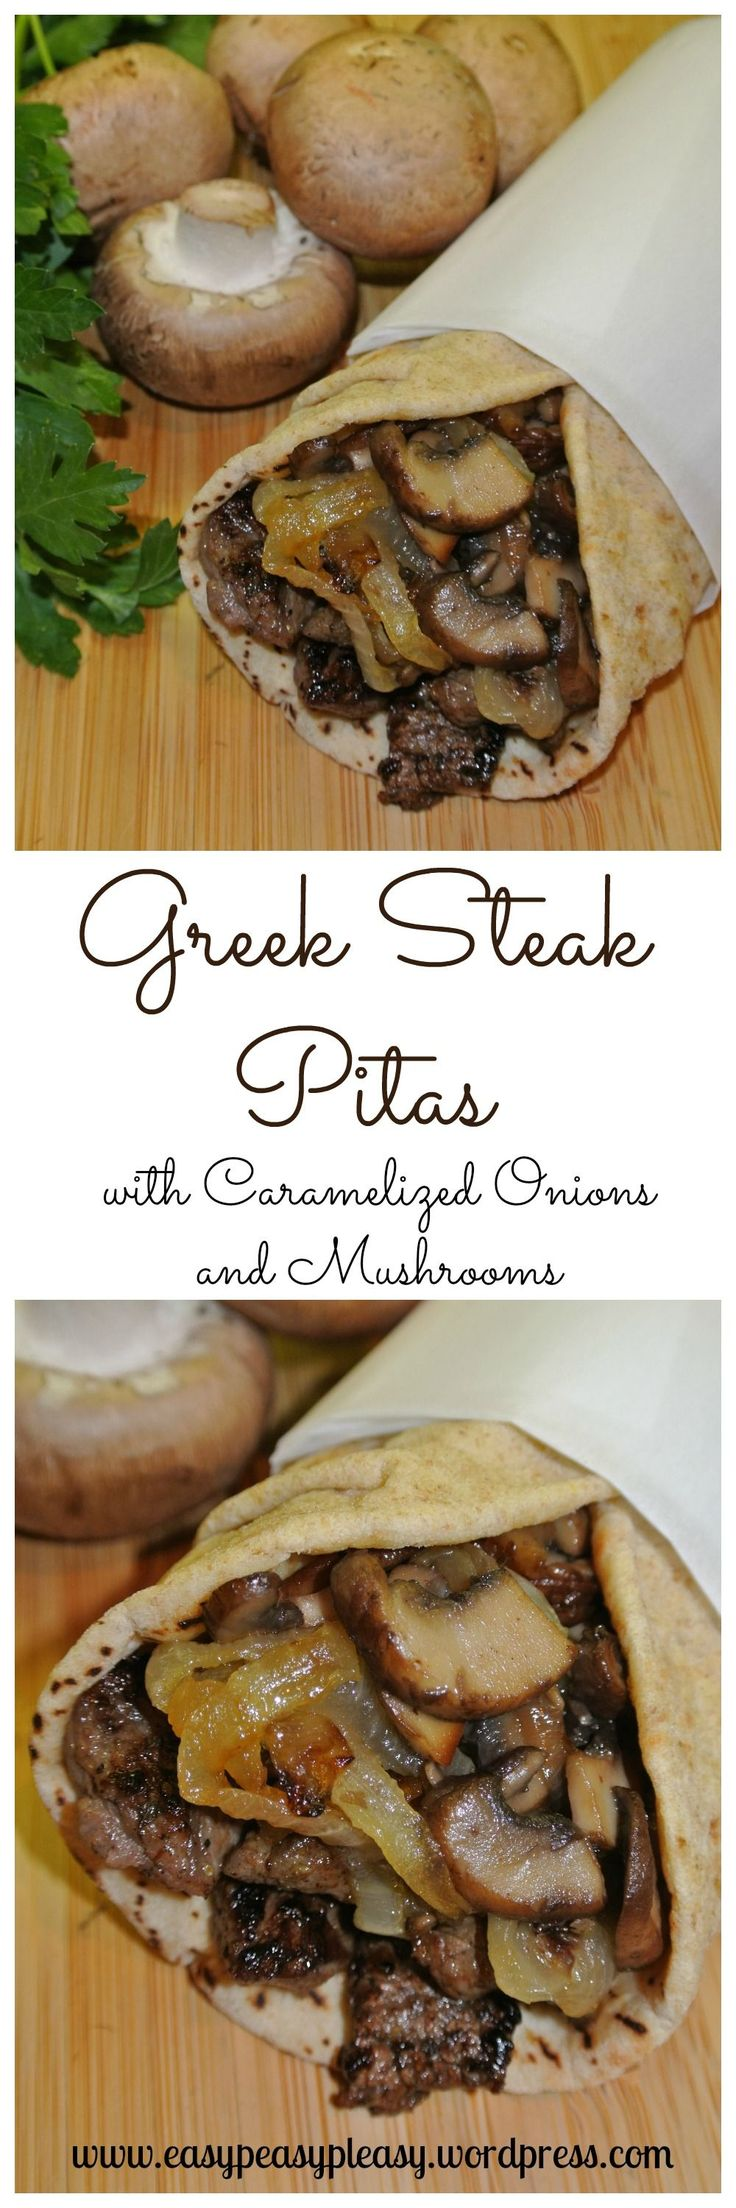 Greek Steak Pitas with Caramelized Onions and Mushrooms. 1 to 1 1/2 lb top sirloin steak, cut in thin strips 1 teaspoon dried oregano 1 teaspoon Cavender's Greek Seasoning 1/2 teaspoon salt and pepper 2 large onions, sliced 8 fresh baby portabella mushrooms, sliced 2 tablespoons butter 5 tablespoons olive oil or canola oil, divided Pitas